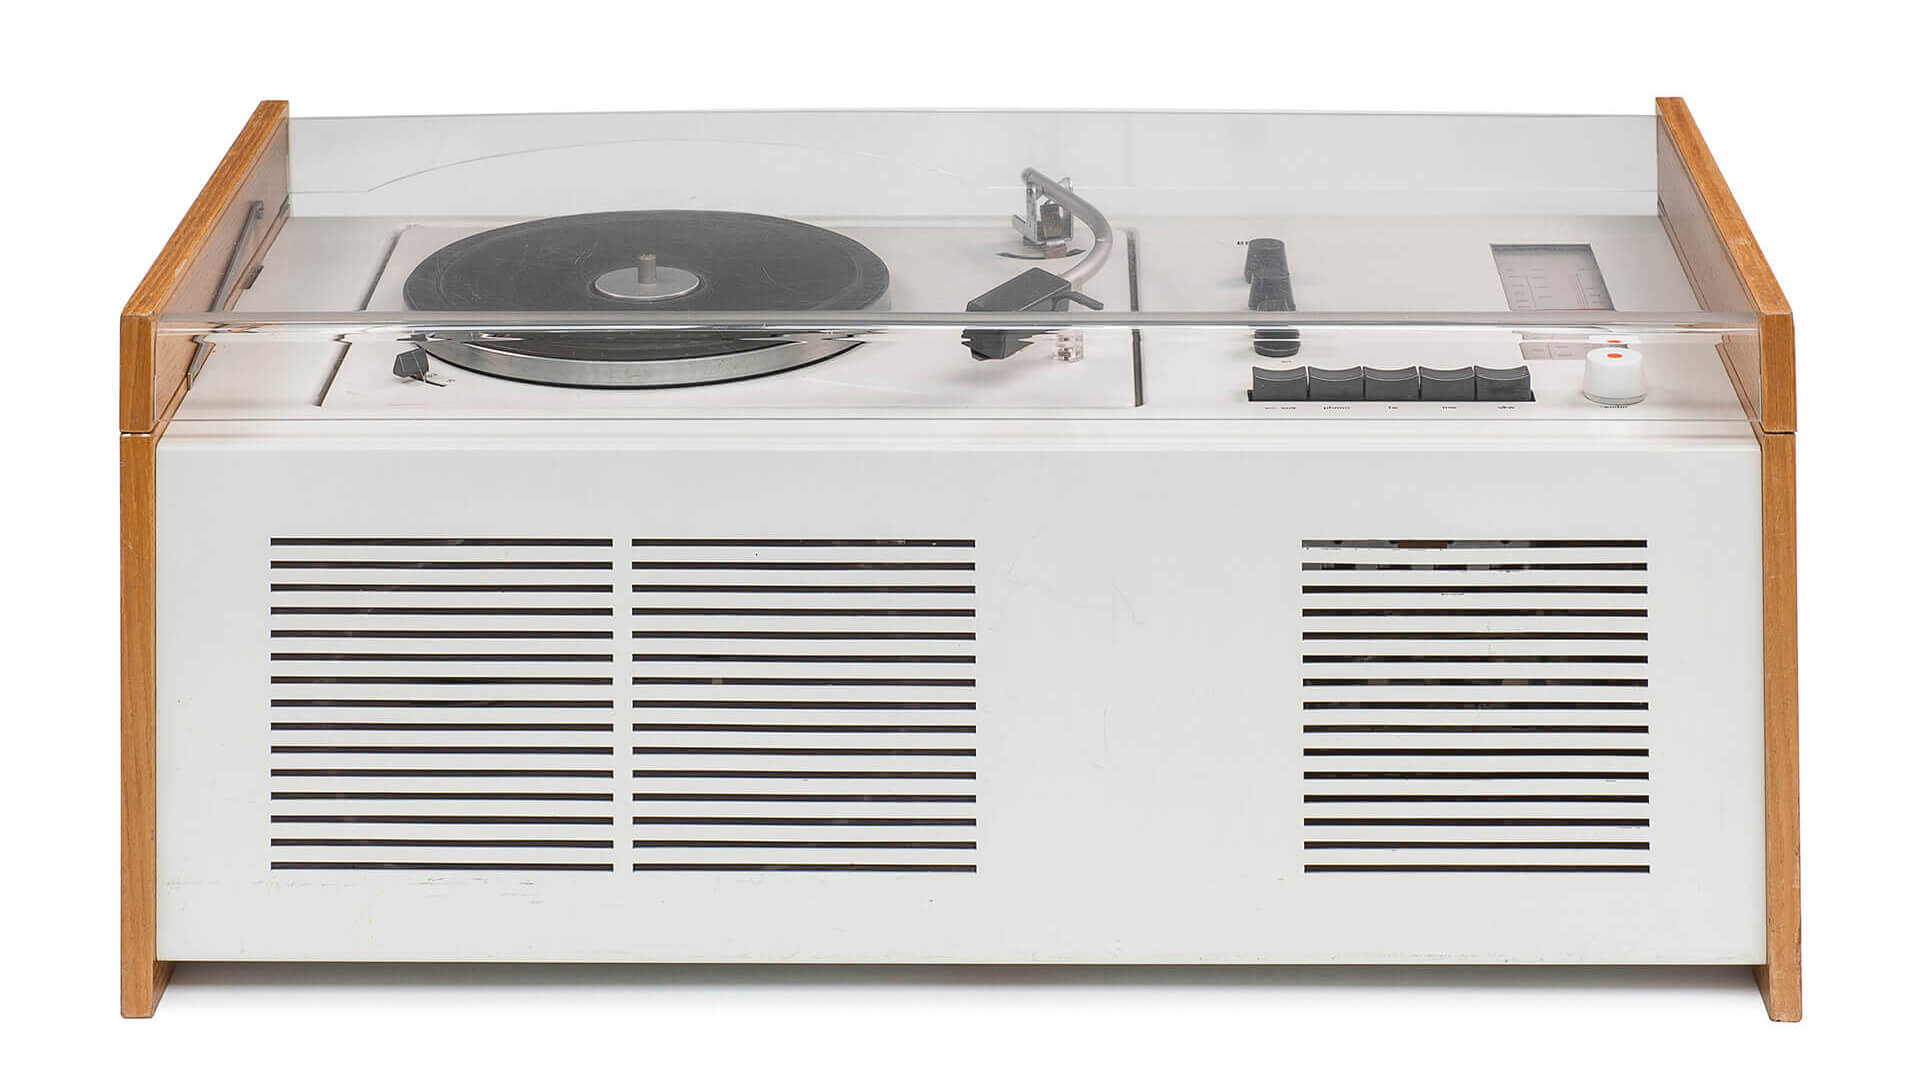 Dieter Rams and Hans Gugelot, Stereo-Phonosuper, SK 6, called Schneewittchensarg), 1956/60 | German Design 1949–1989, Two Countries, One History at Vitra Design Museum, Germany | STIRworld